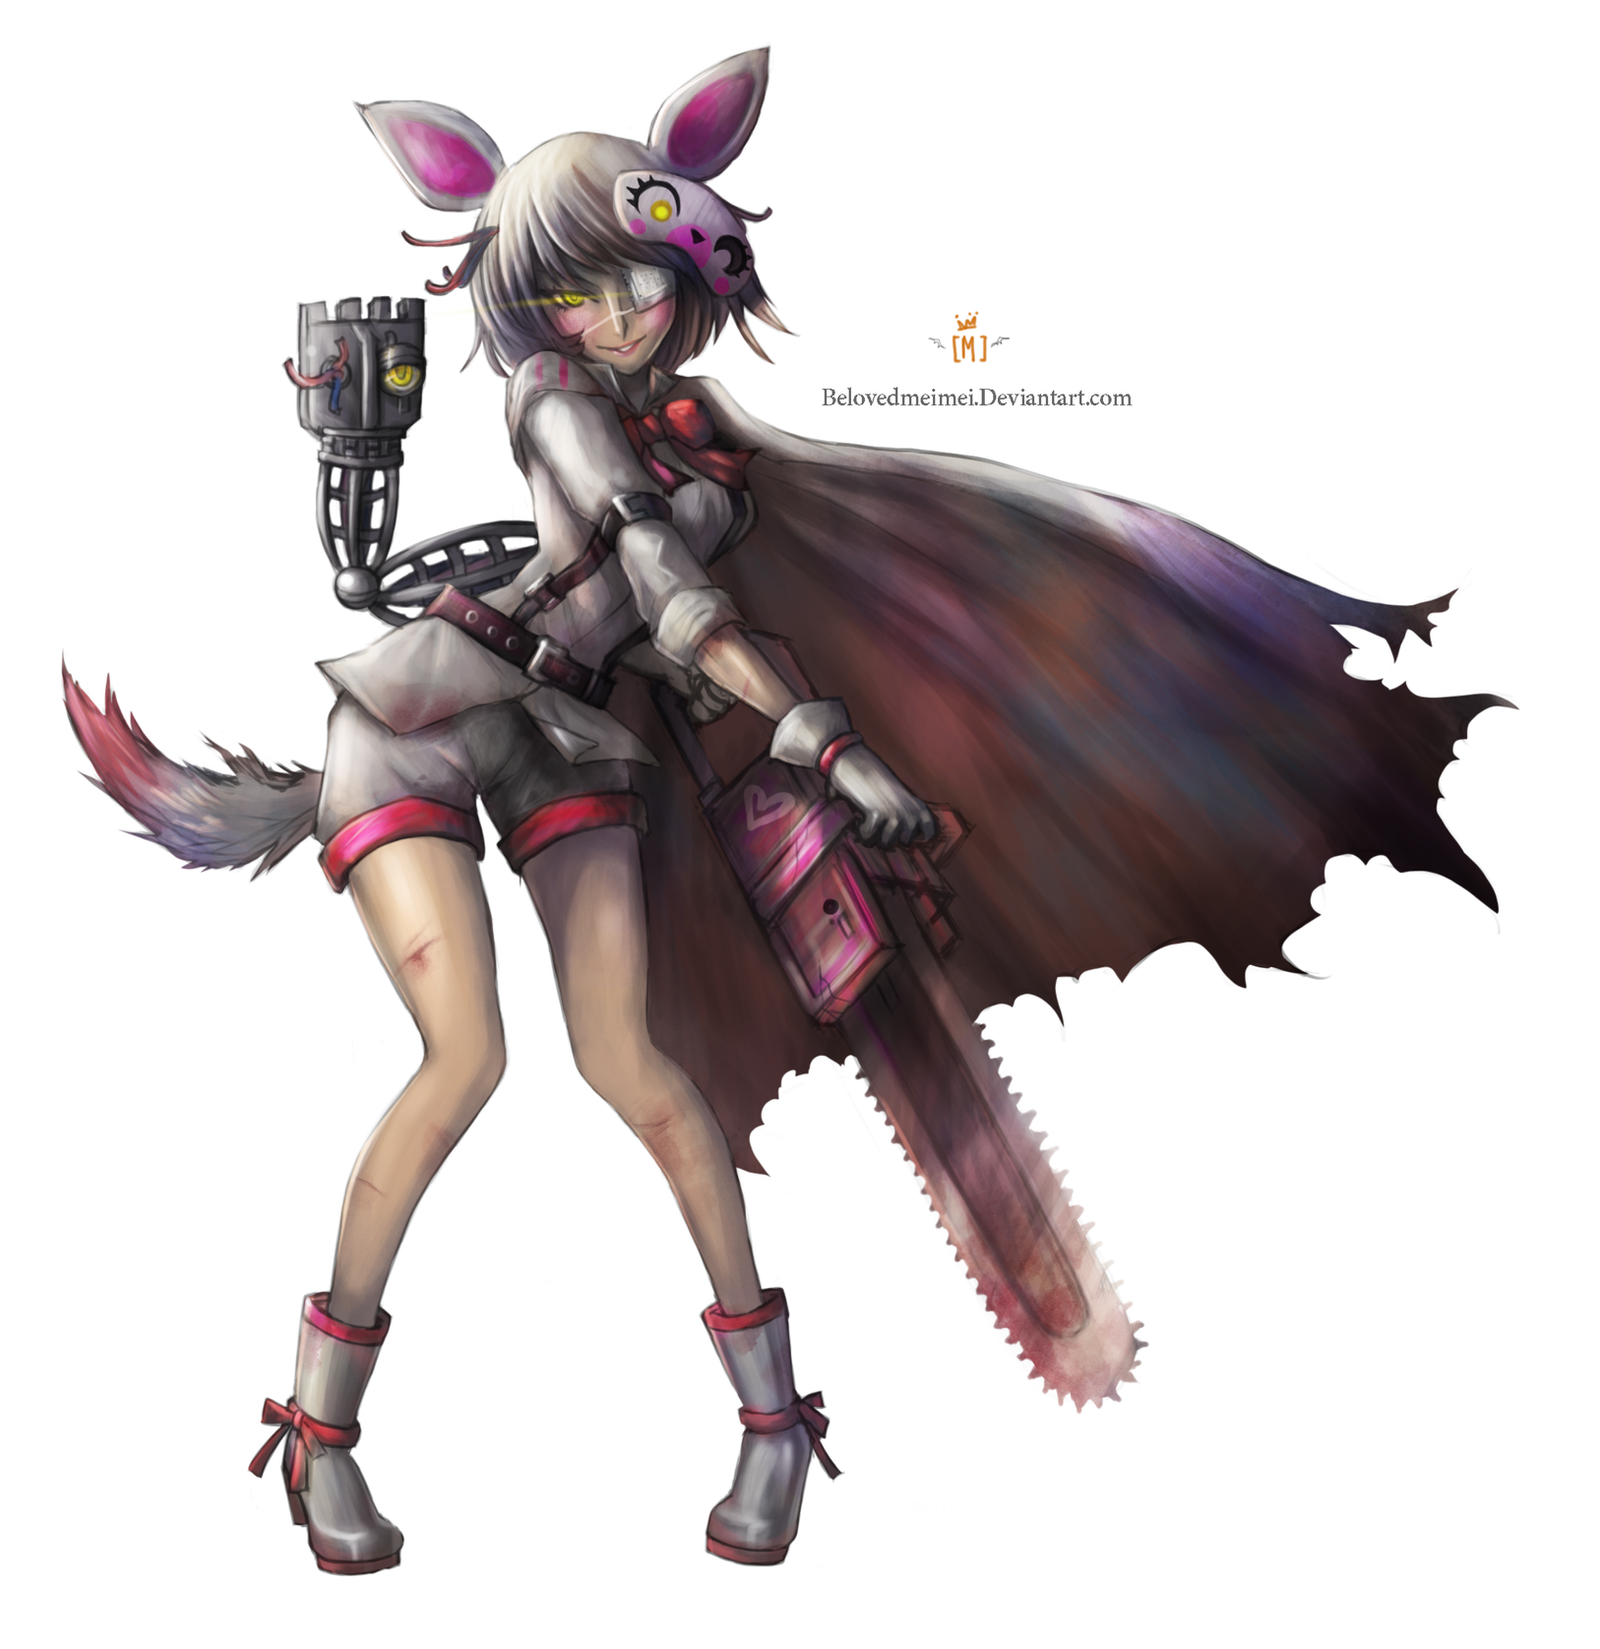 Mangle With Chainsaw + Speedpaint By SirMei On DeviantArt